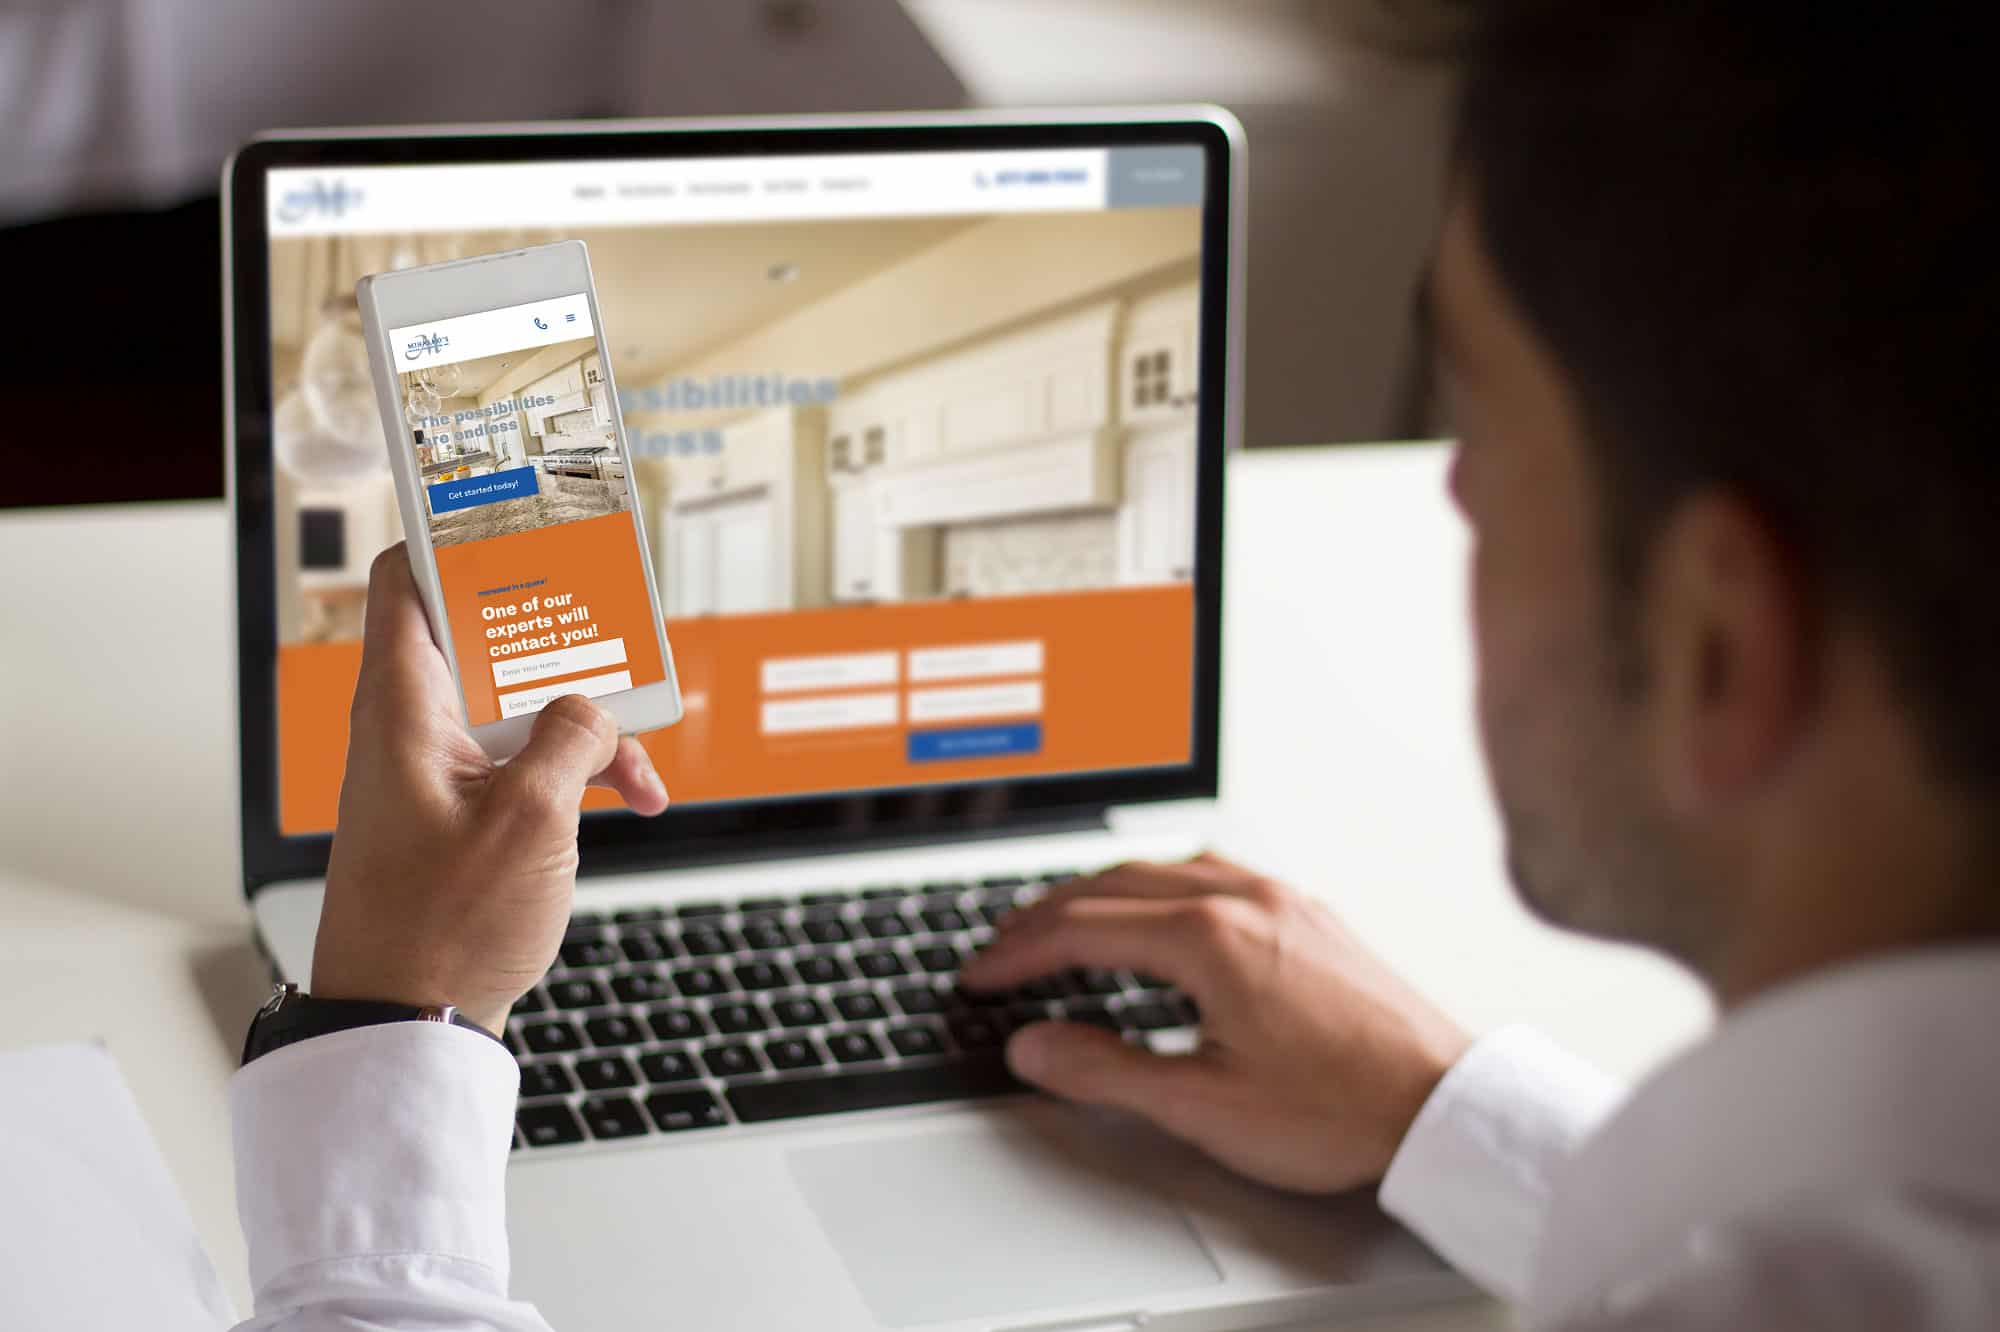 Mihalkos Contracting website on laptop and mobile device